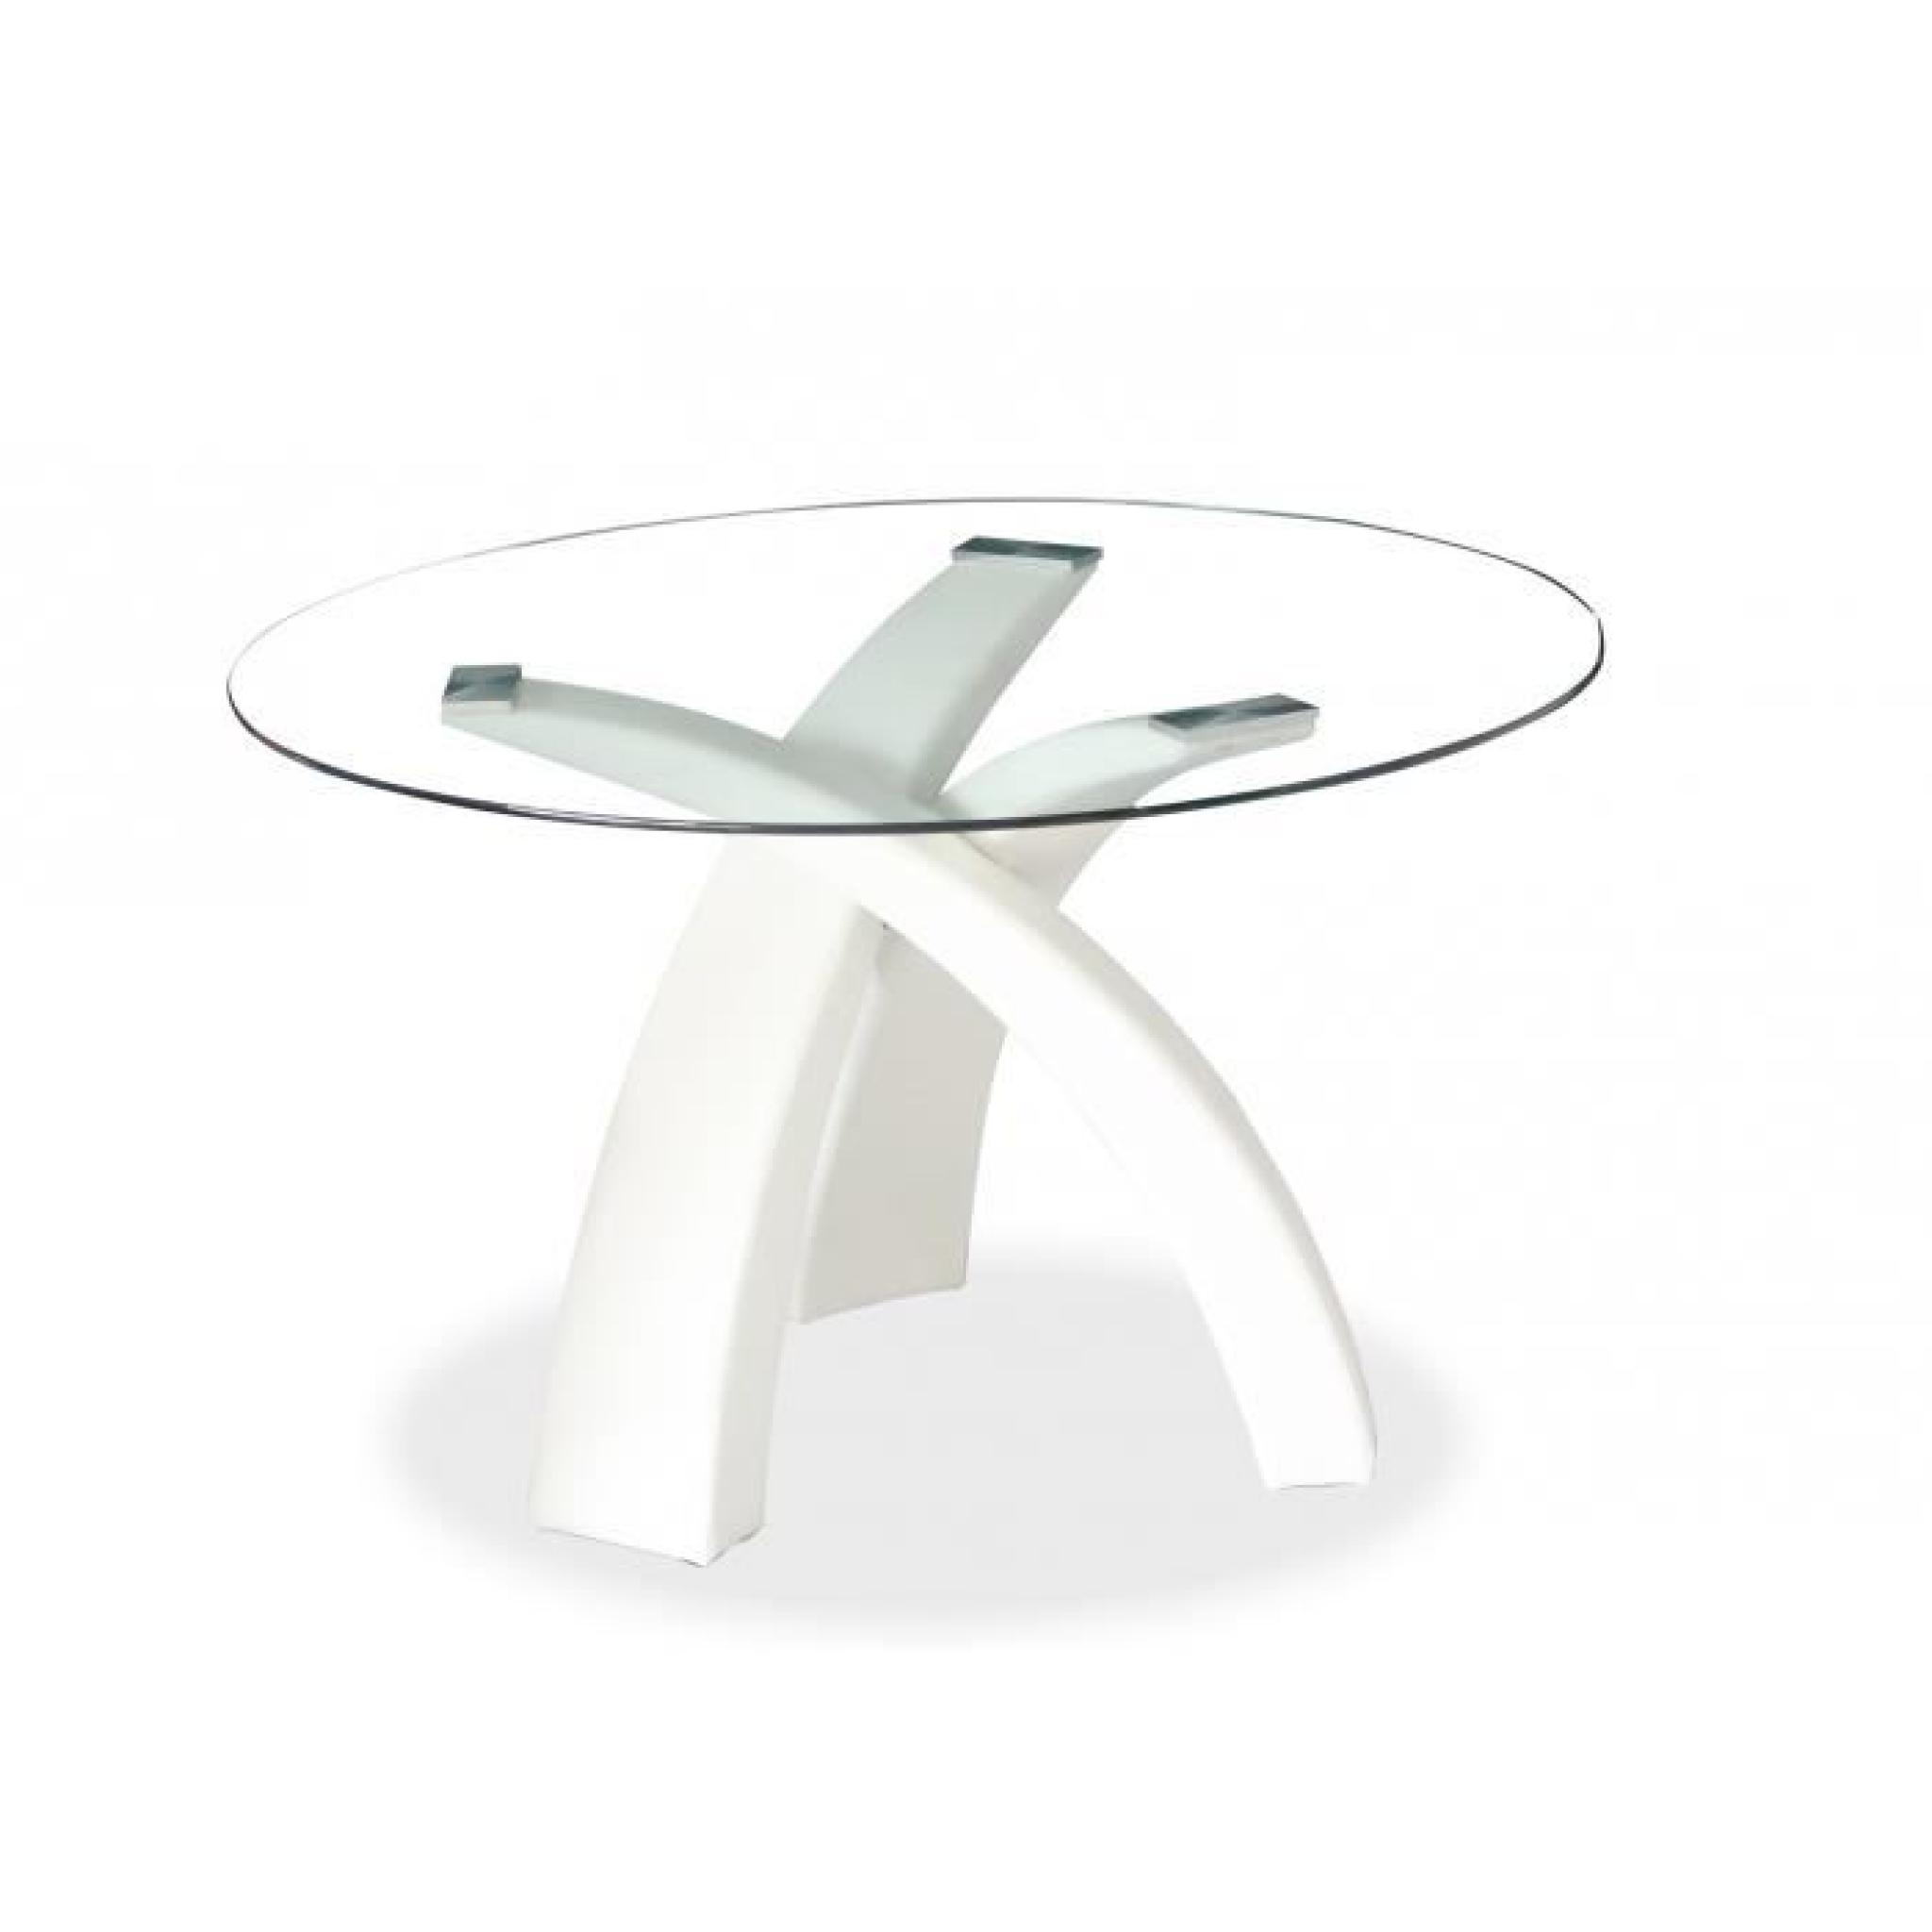 Table manger ronde blanche gore achat vente table for Table ronde verre fly